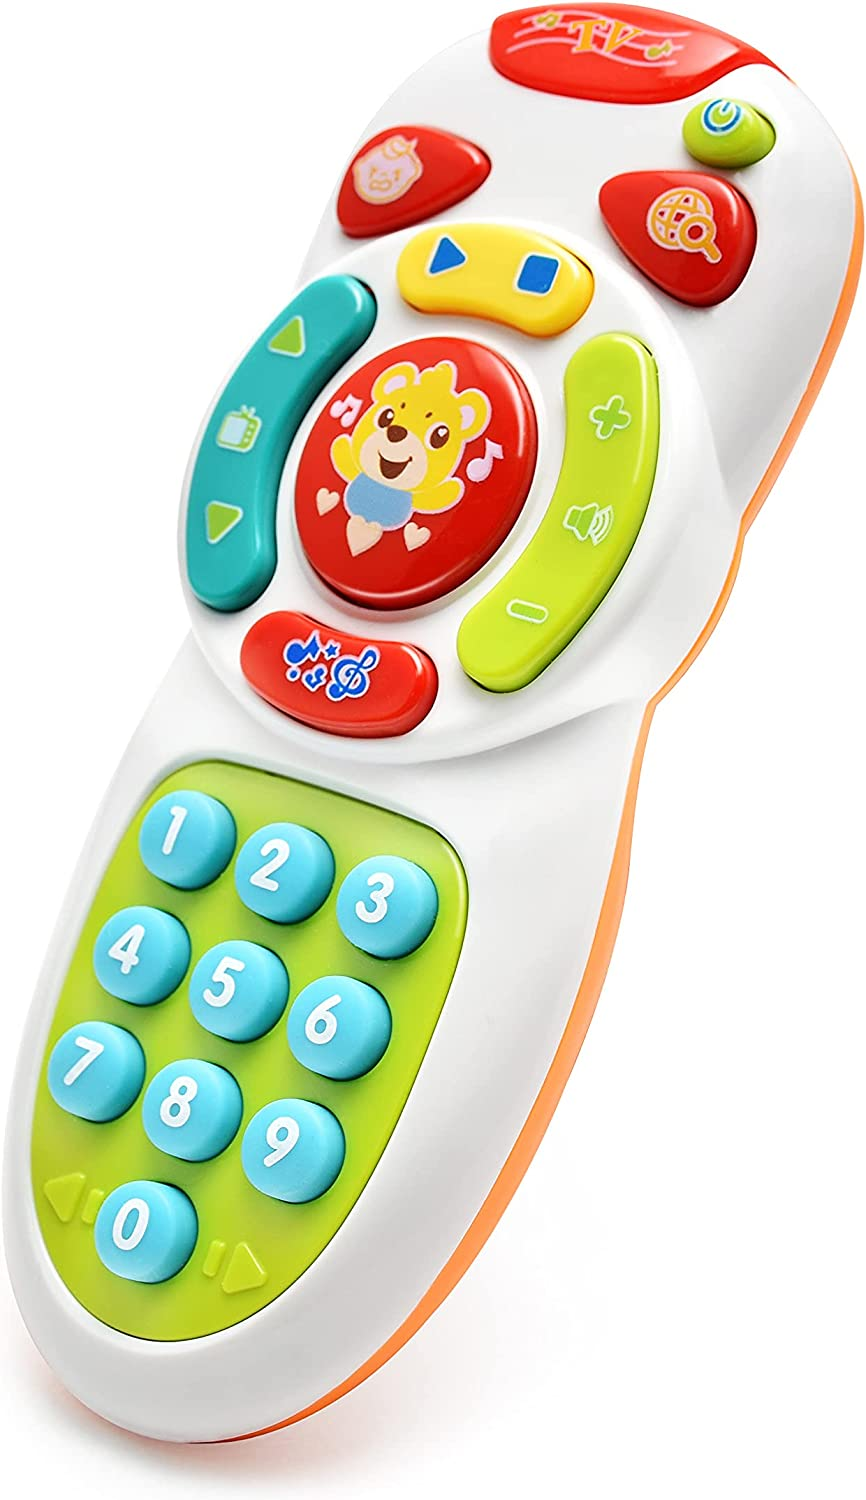 Tuko Musical TV Remote Control Toy with Light and Sound, Early Education Learning Remote Toy for 6 Months+ Toddlers Boys or Girls